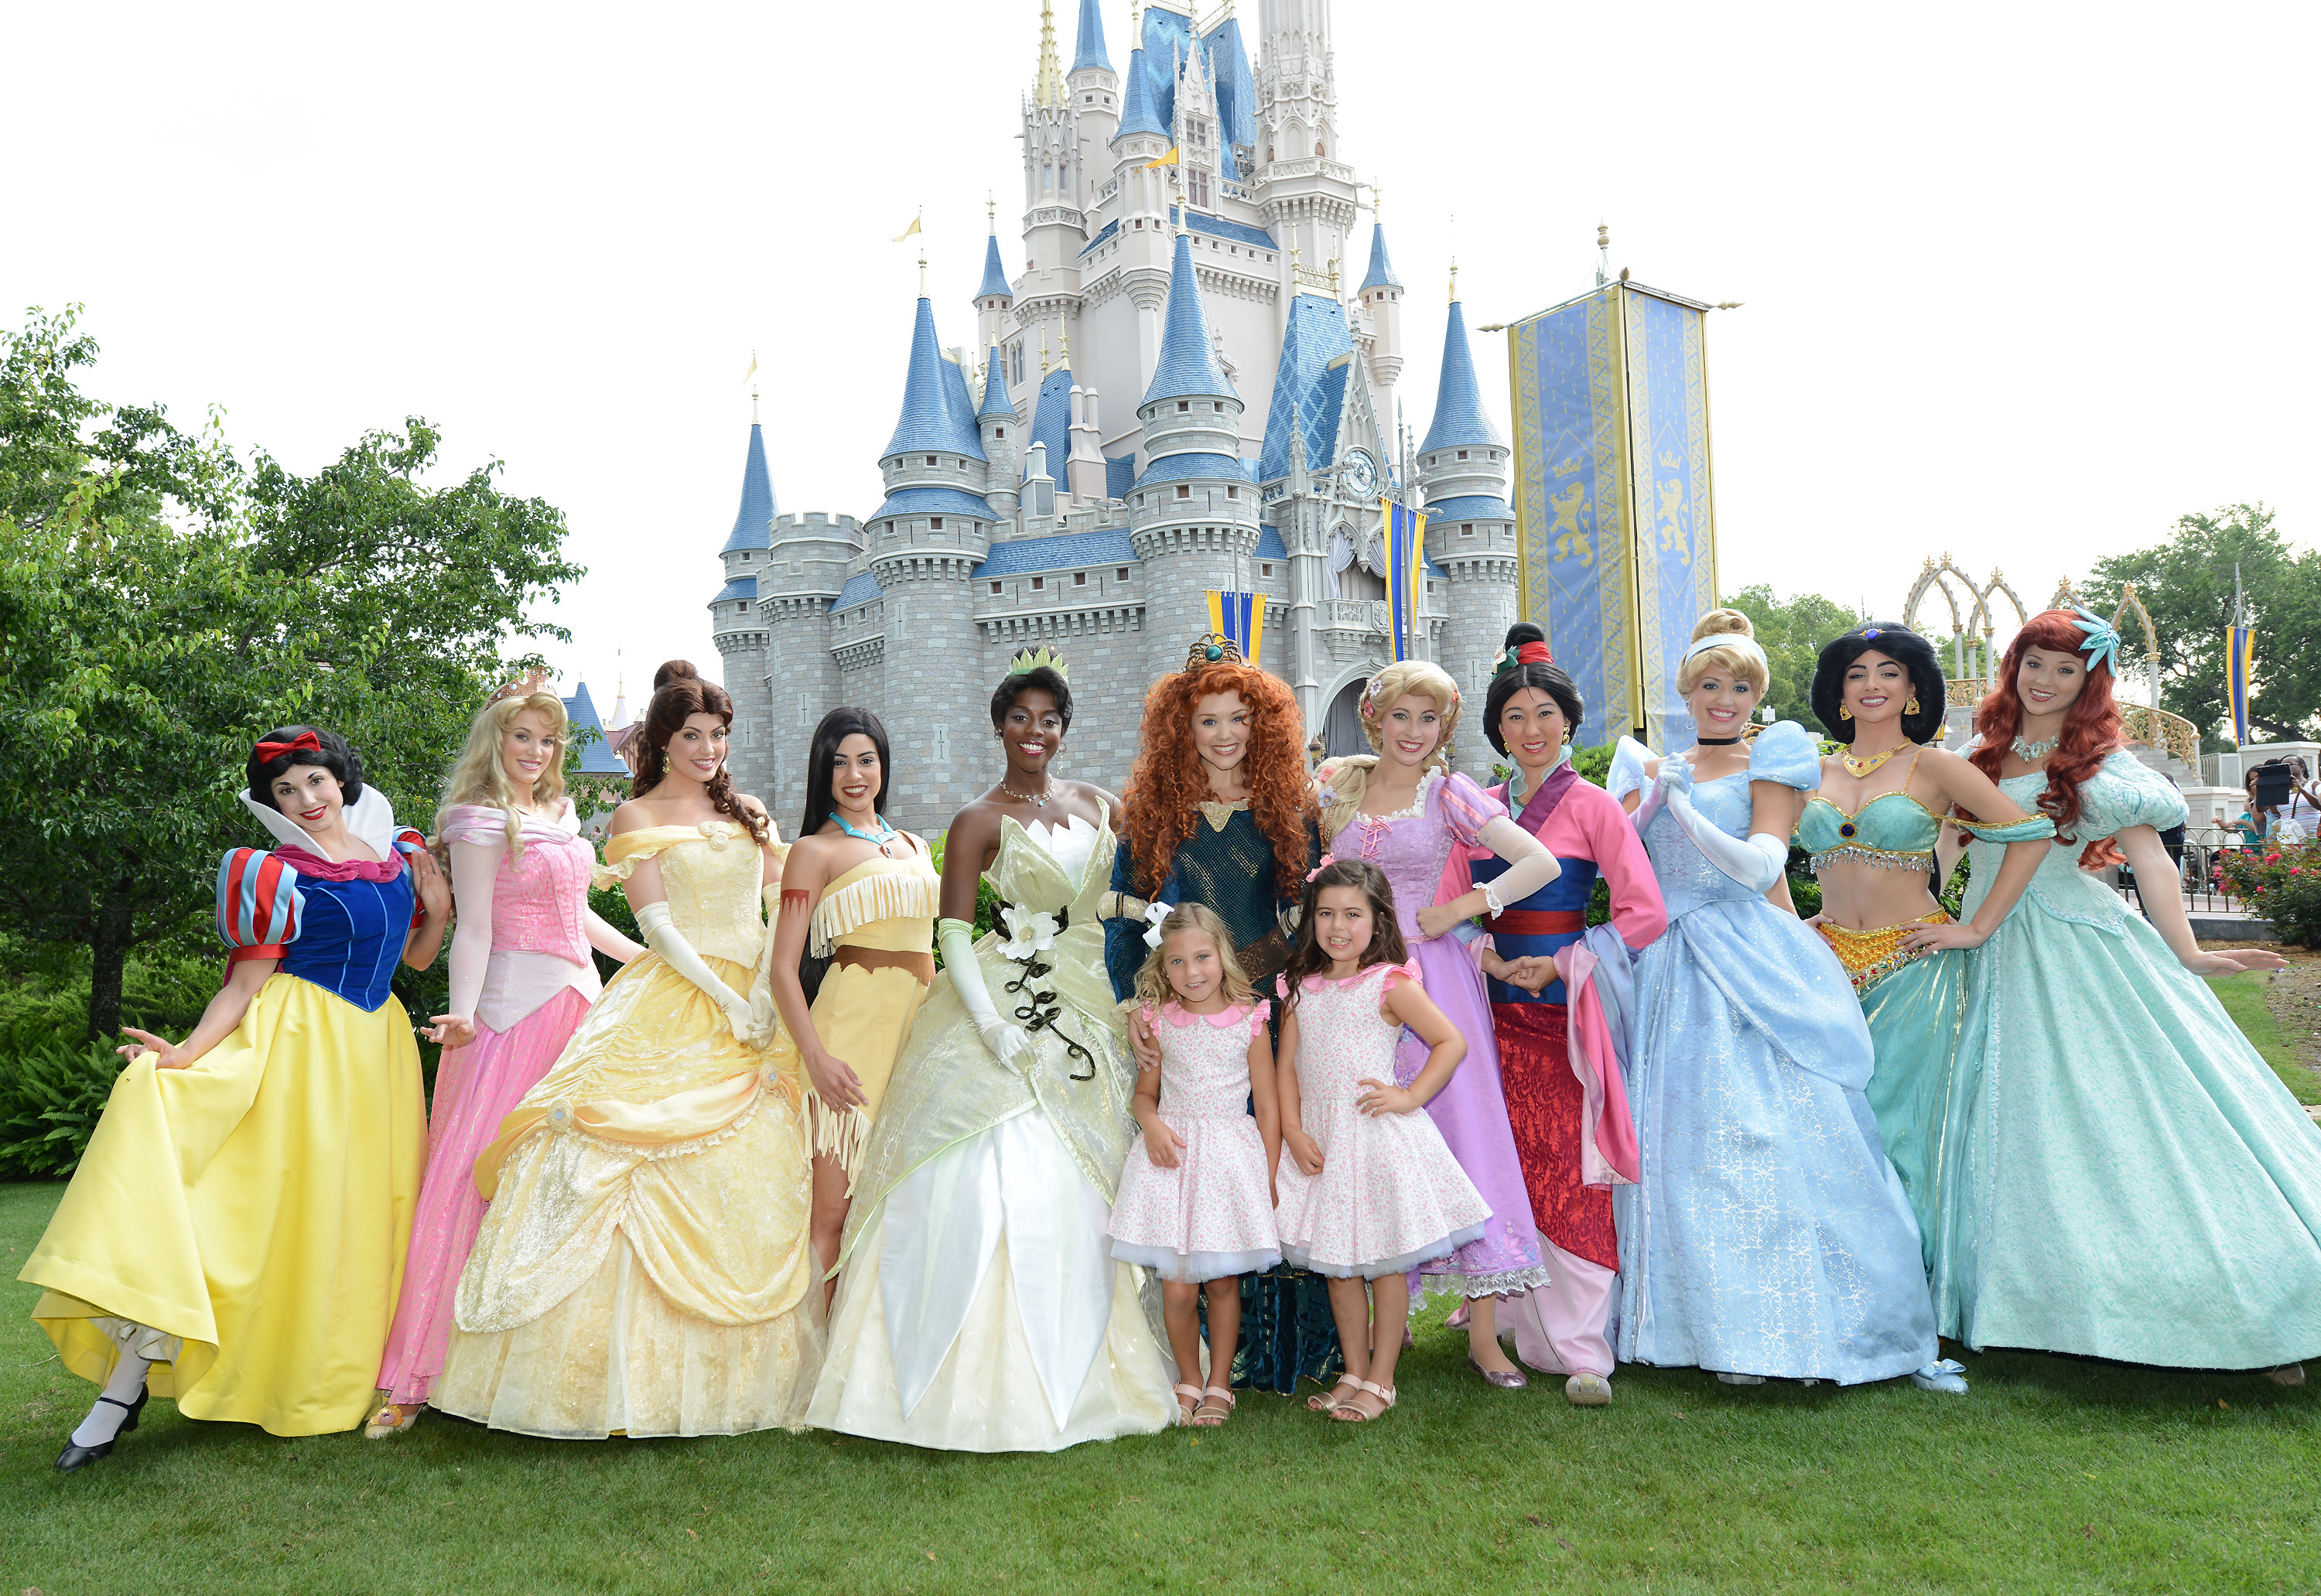 """Rosie McClelland (front left) and Sophia Grace Brownlee (front right), TV personalities from """"The Ellen DeGeneres Show,"""" pose with the newest Disney Princess, the brave and passionate Merida, and the rest of the Disney Princess royal court at Magic Kingdom in Lake Buena Vista, Fla. (Photo: Business Wire)"""